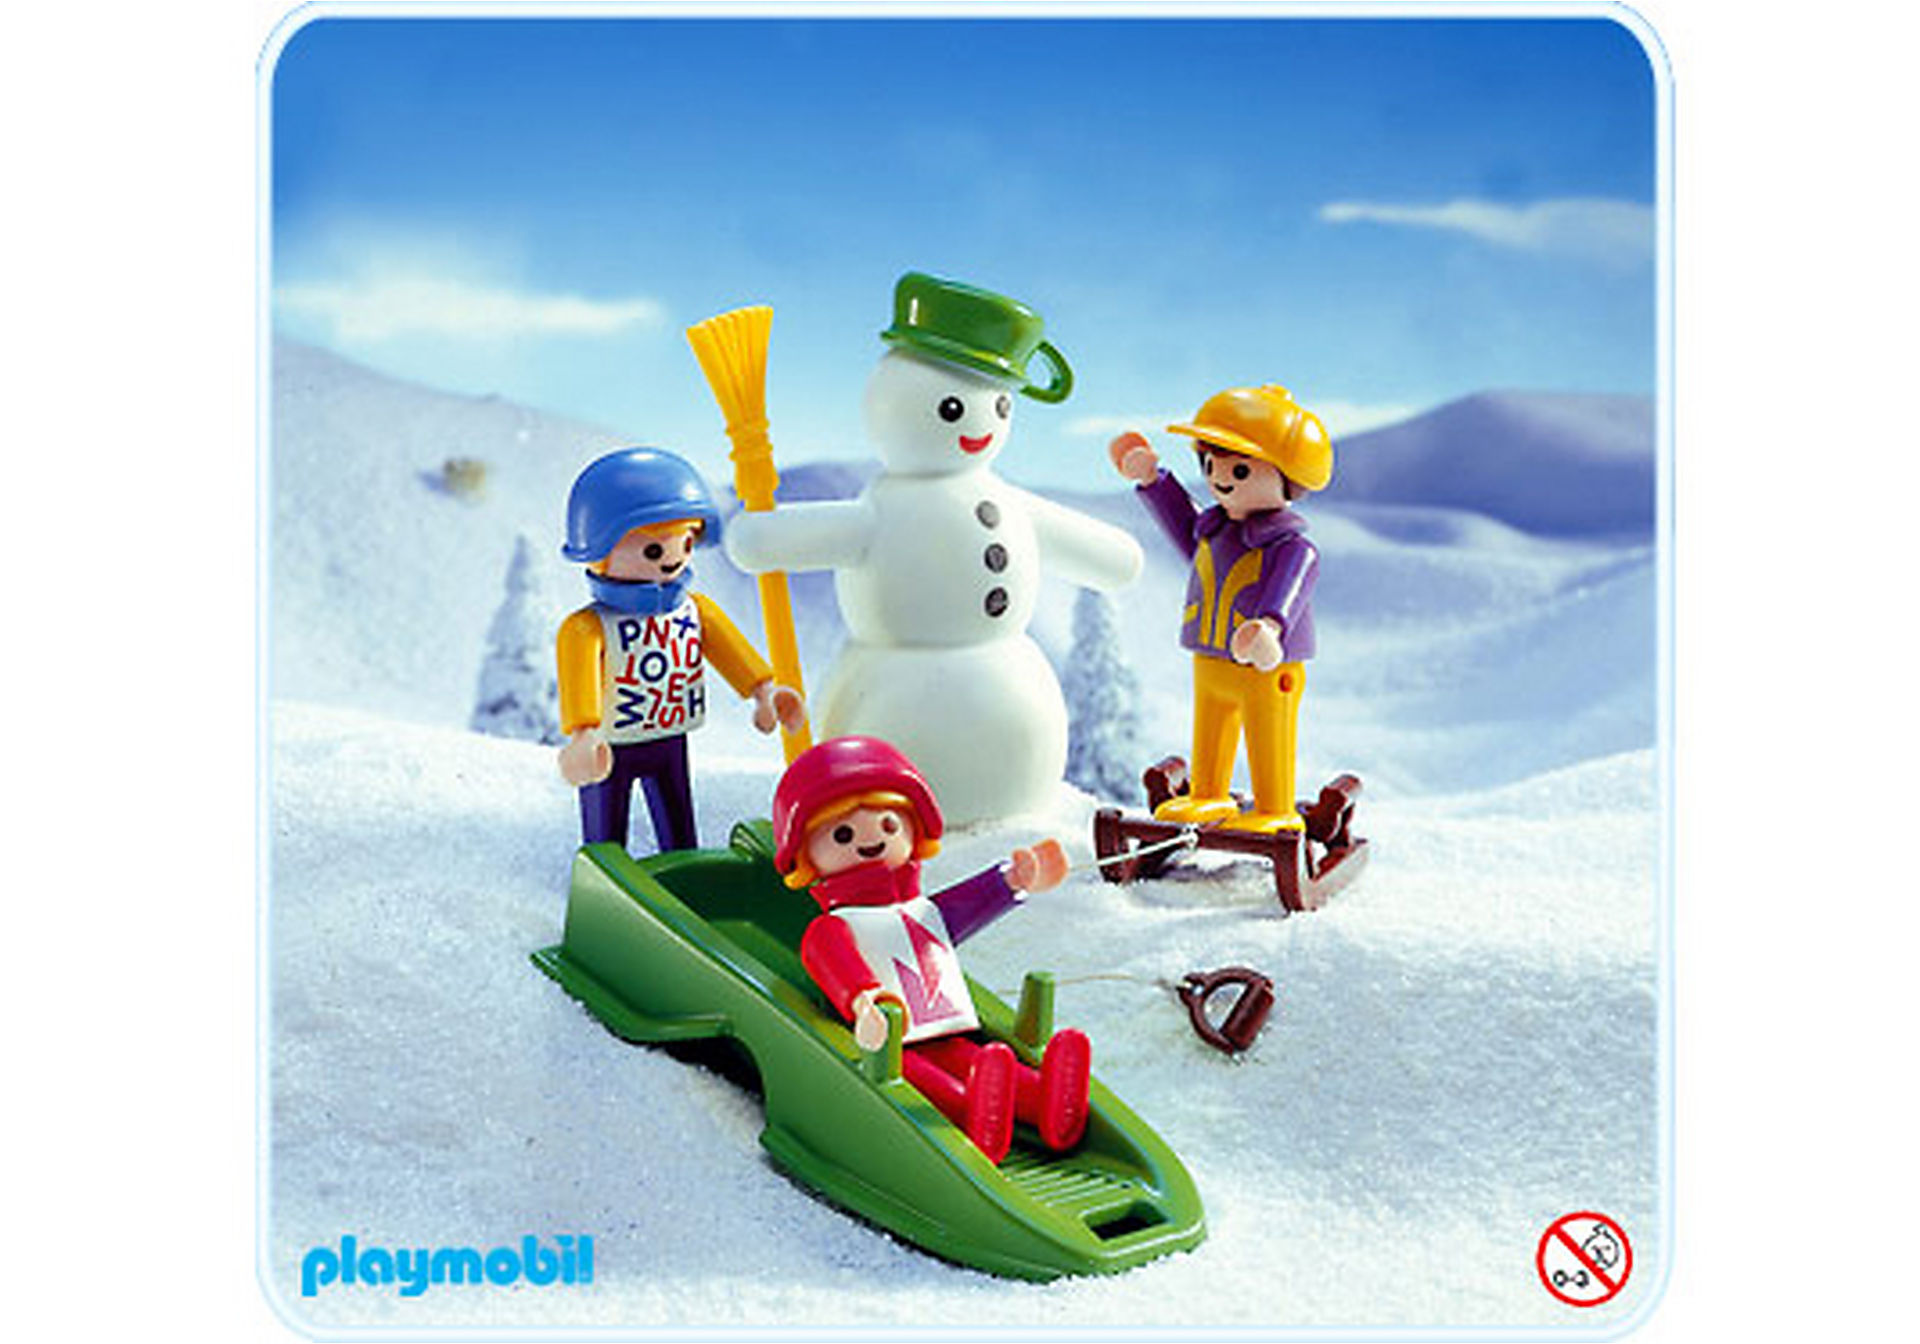 http://media.playmobil.com/i/playmobil/3688-A_product_detail/Enfants / Luges